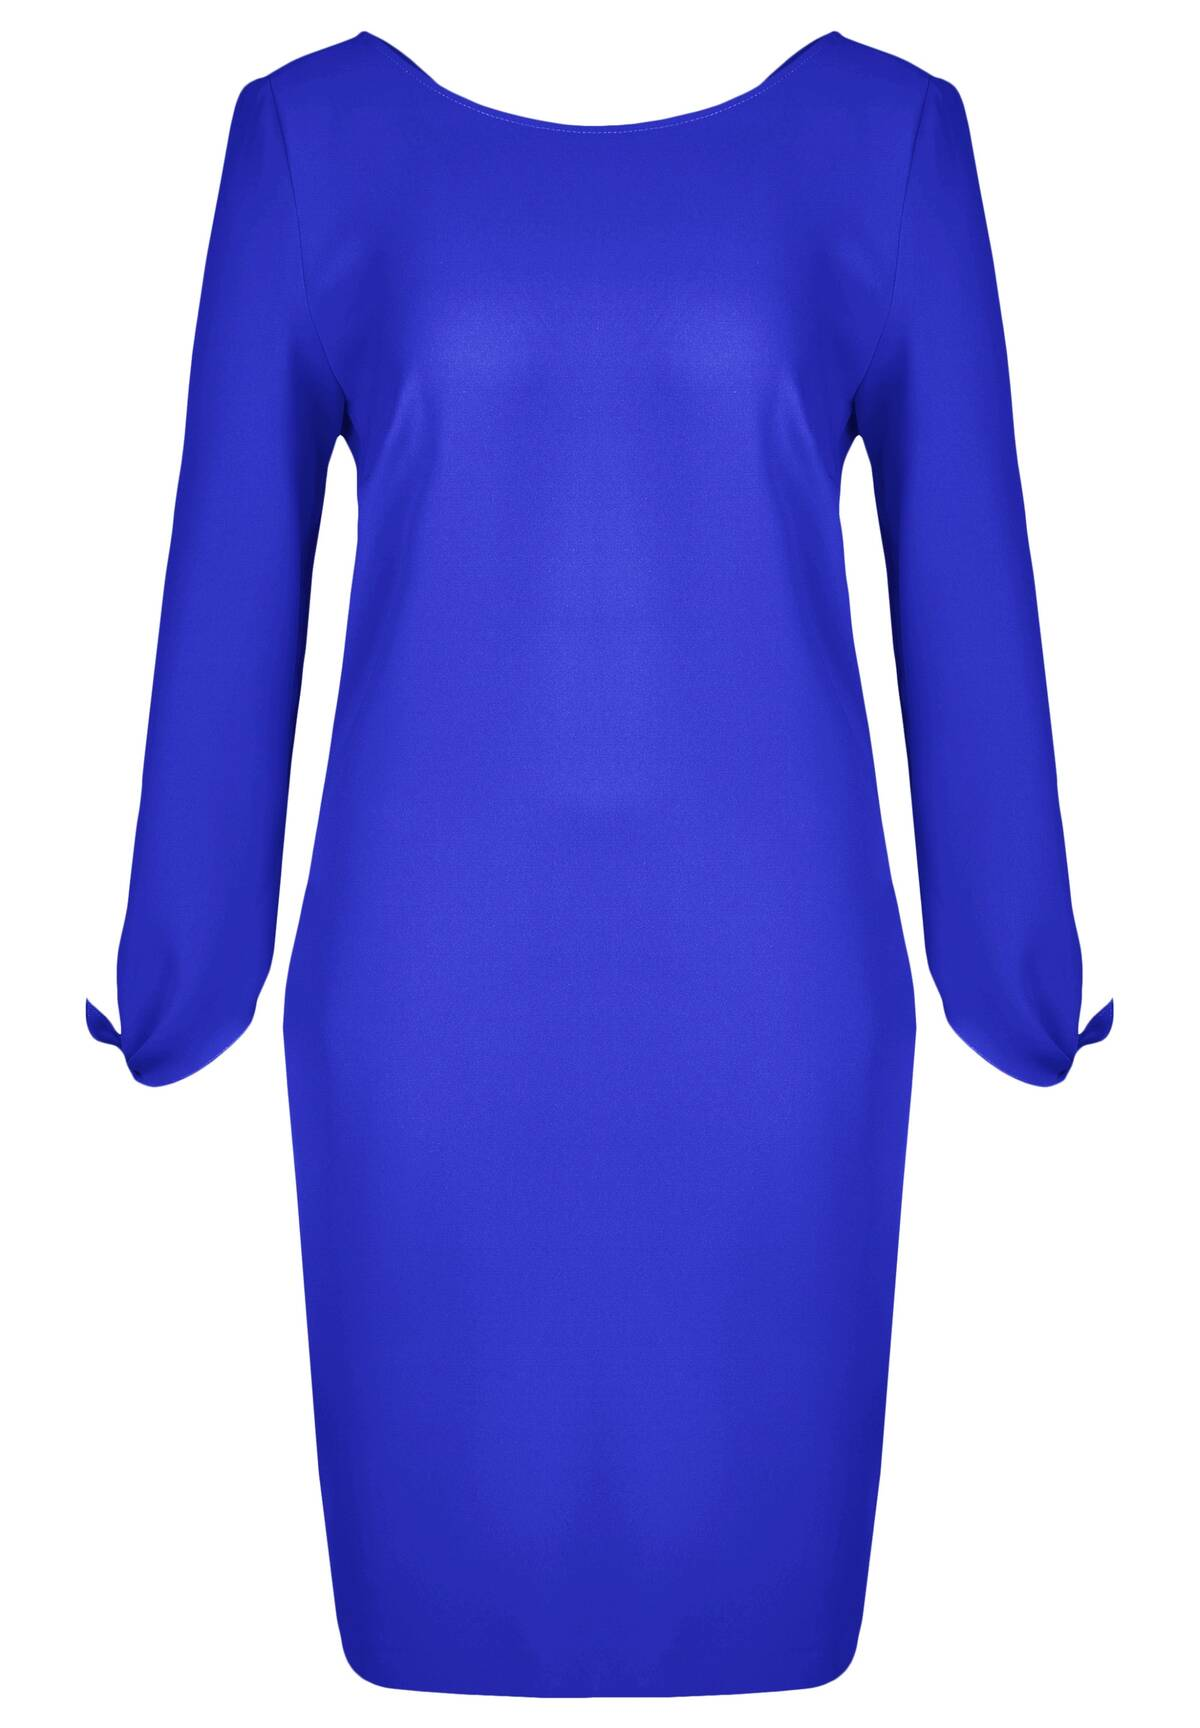 Modisches Kleid / Dress